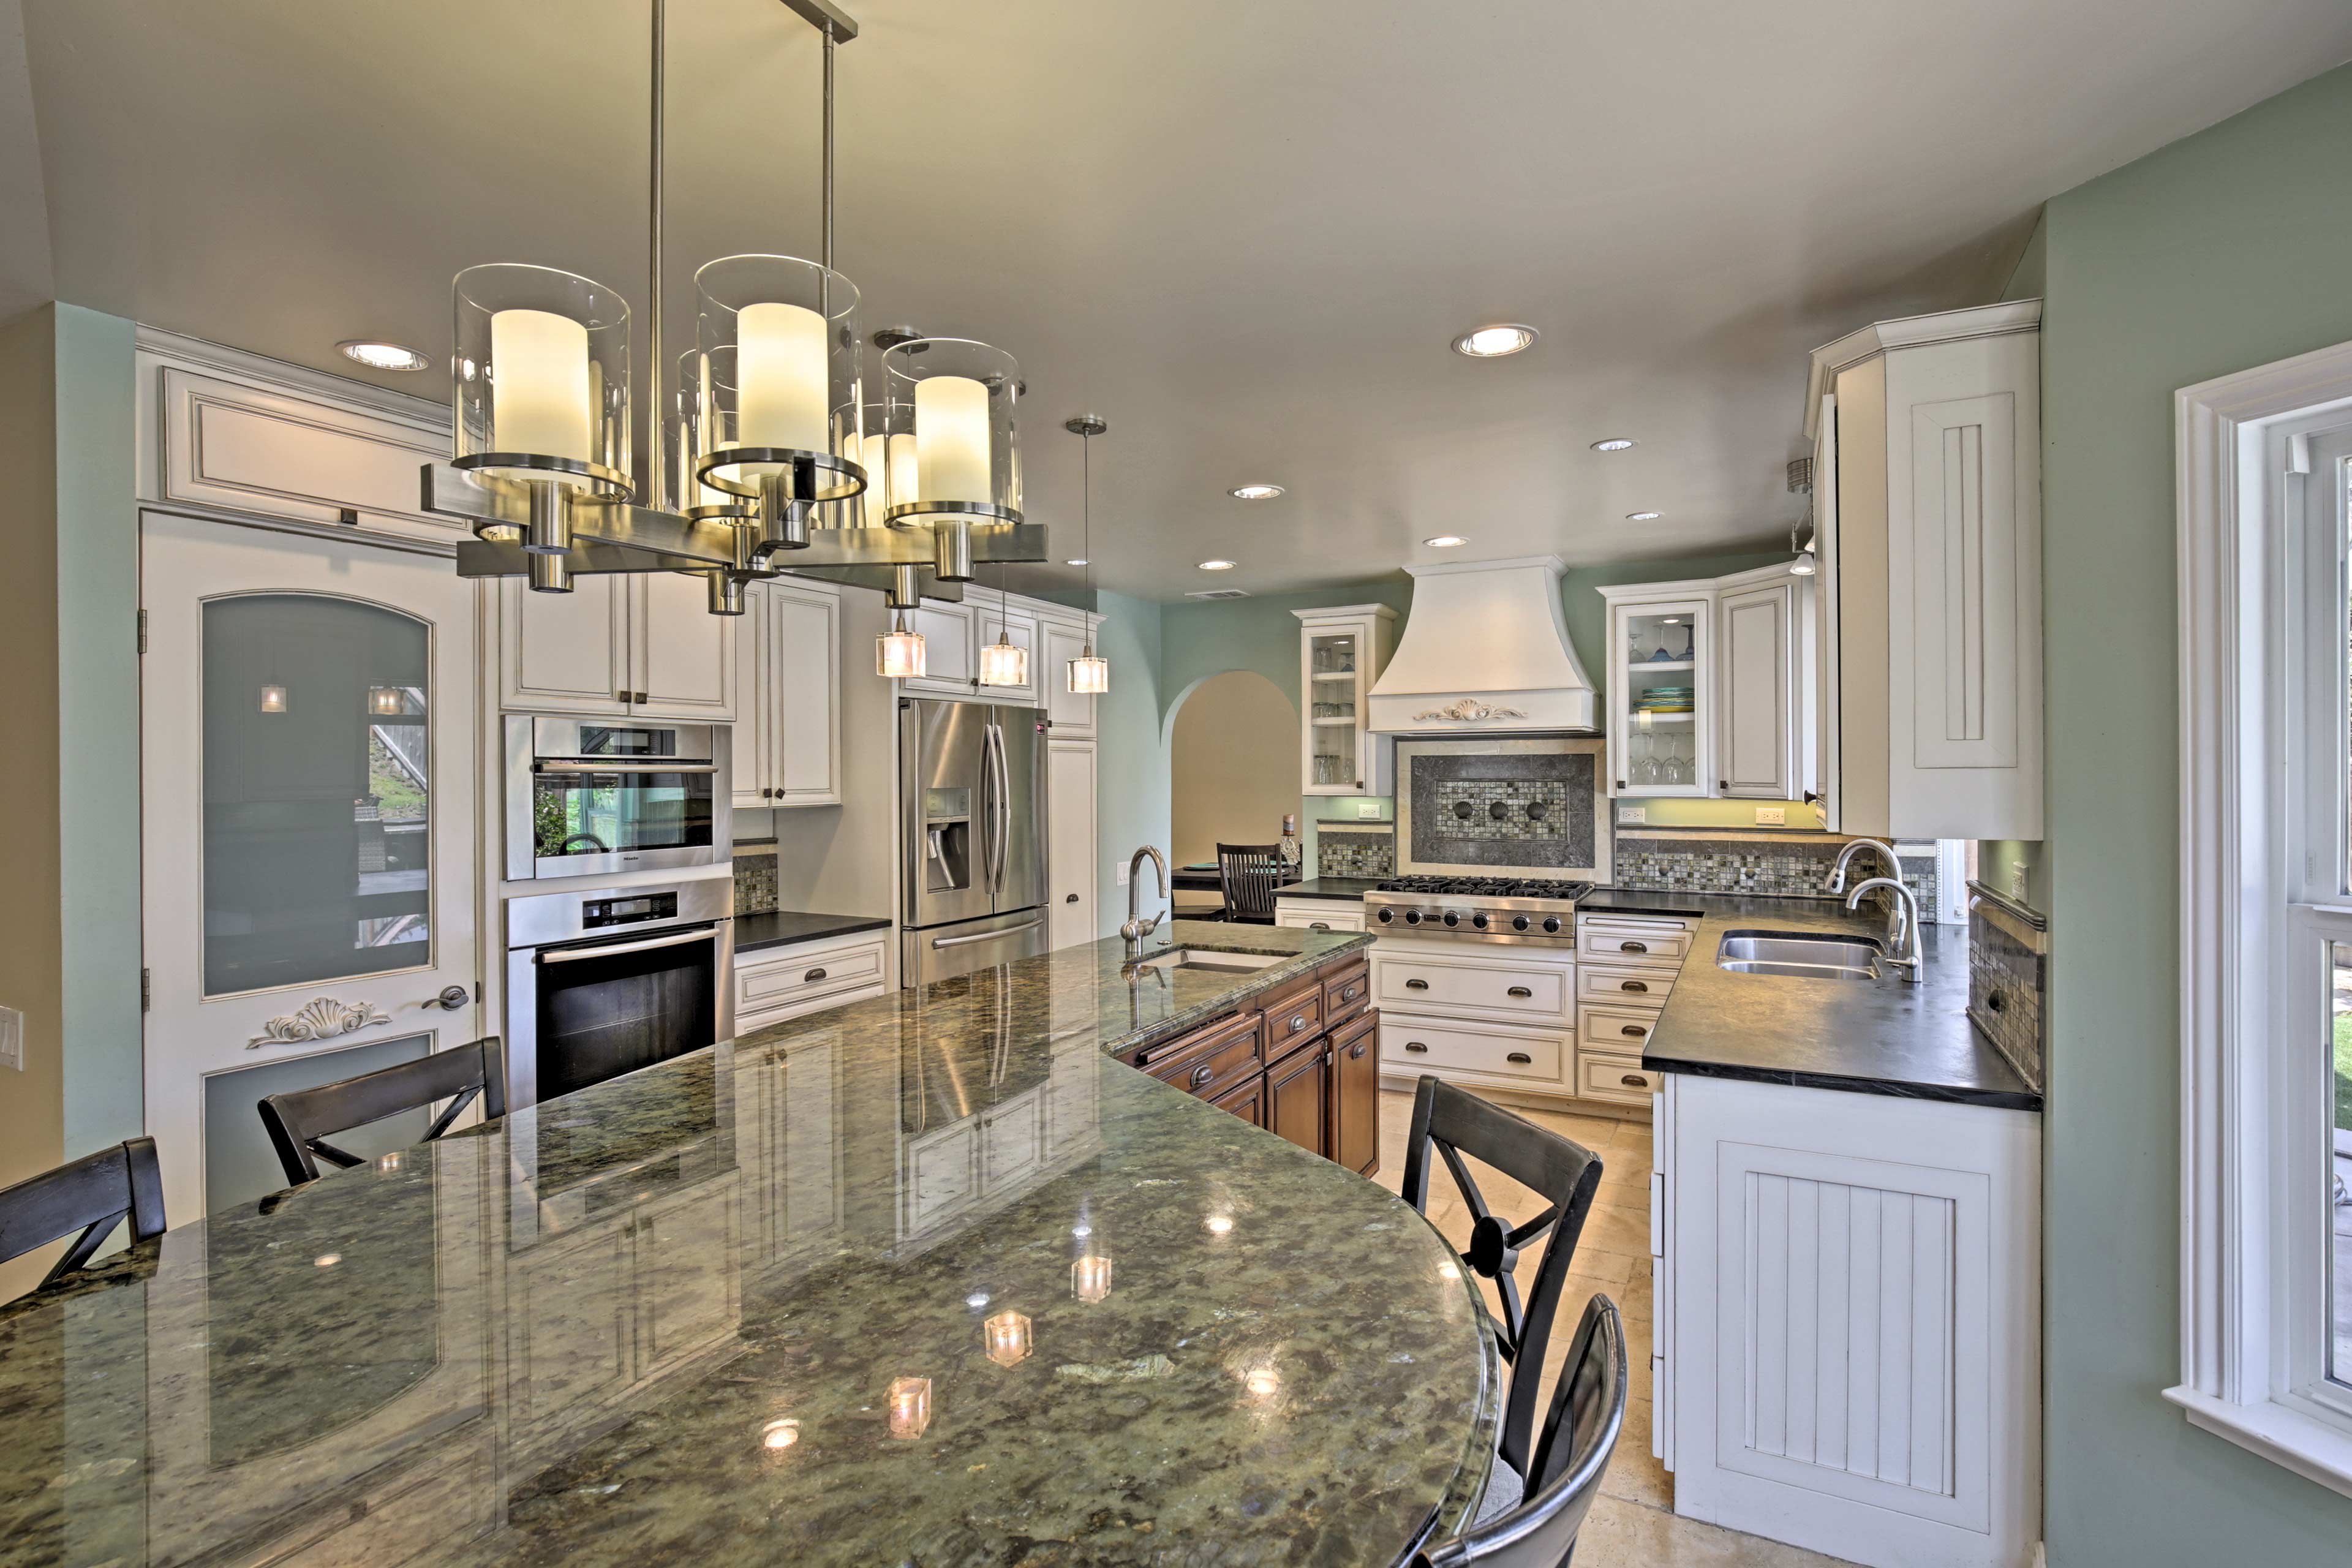 Fall in love with cooking all over again while preparing dinner in this kitchen!